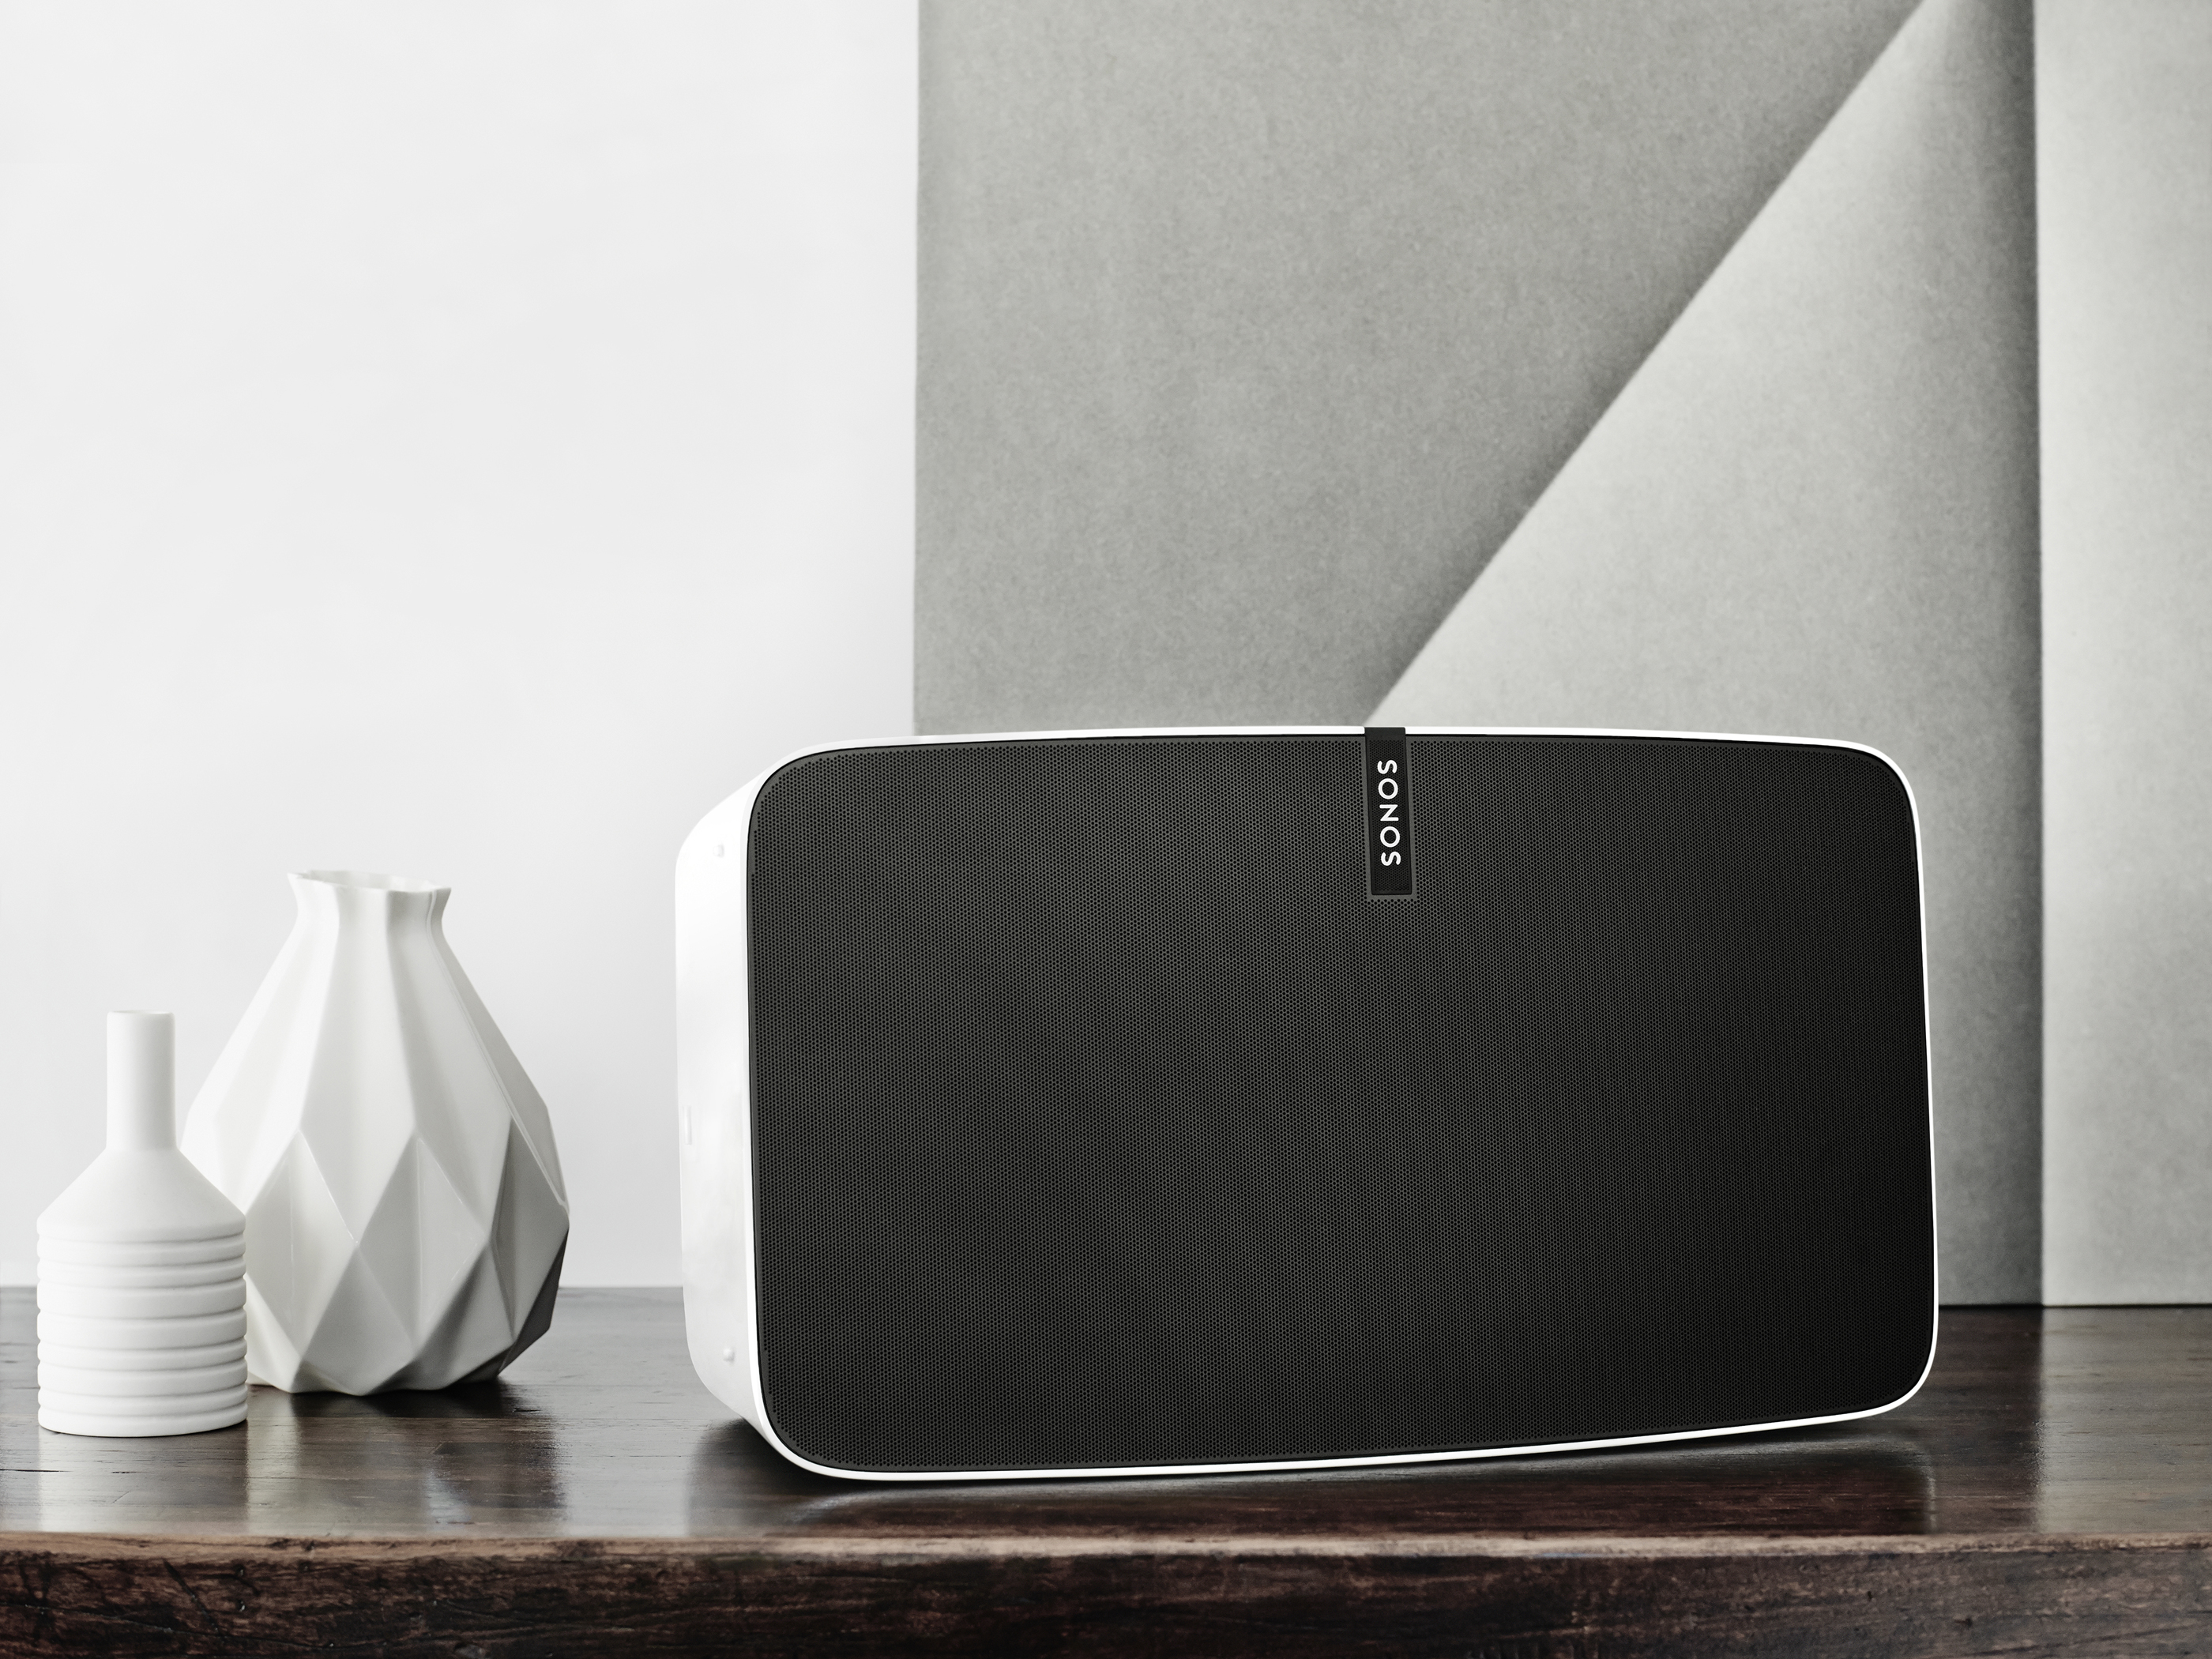 Sonos pumps up the volume with a new Play:5 speaker